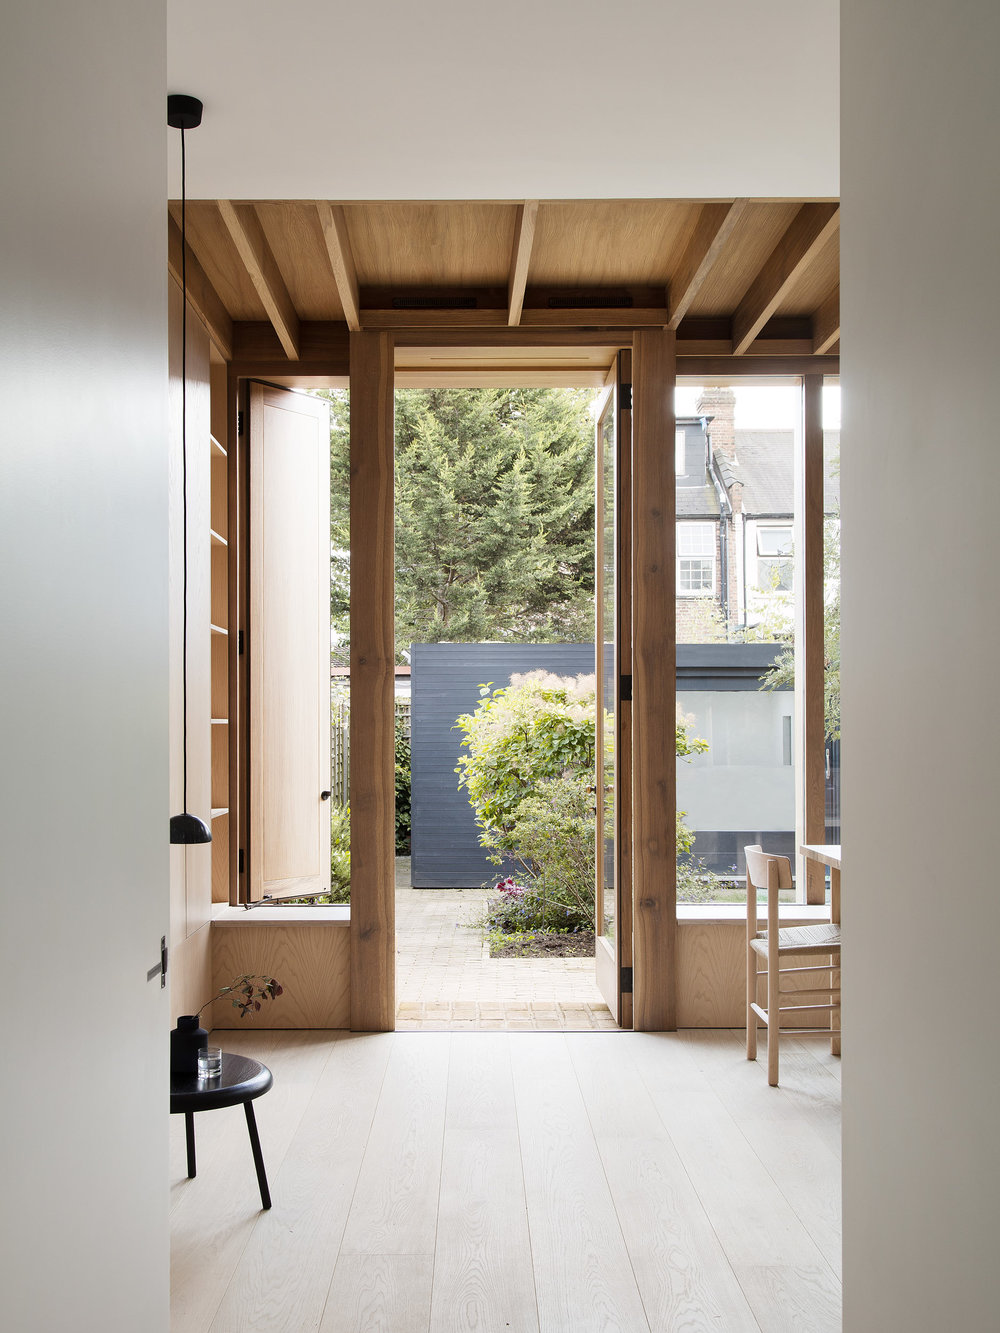 O'SULLIVAN SKOUFOGLOU ARCHITECTS — Dewsbury Road house — On Anniversary Magazine 1.jpg